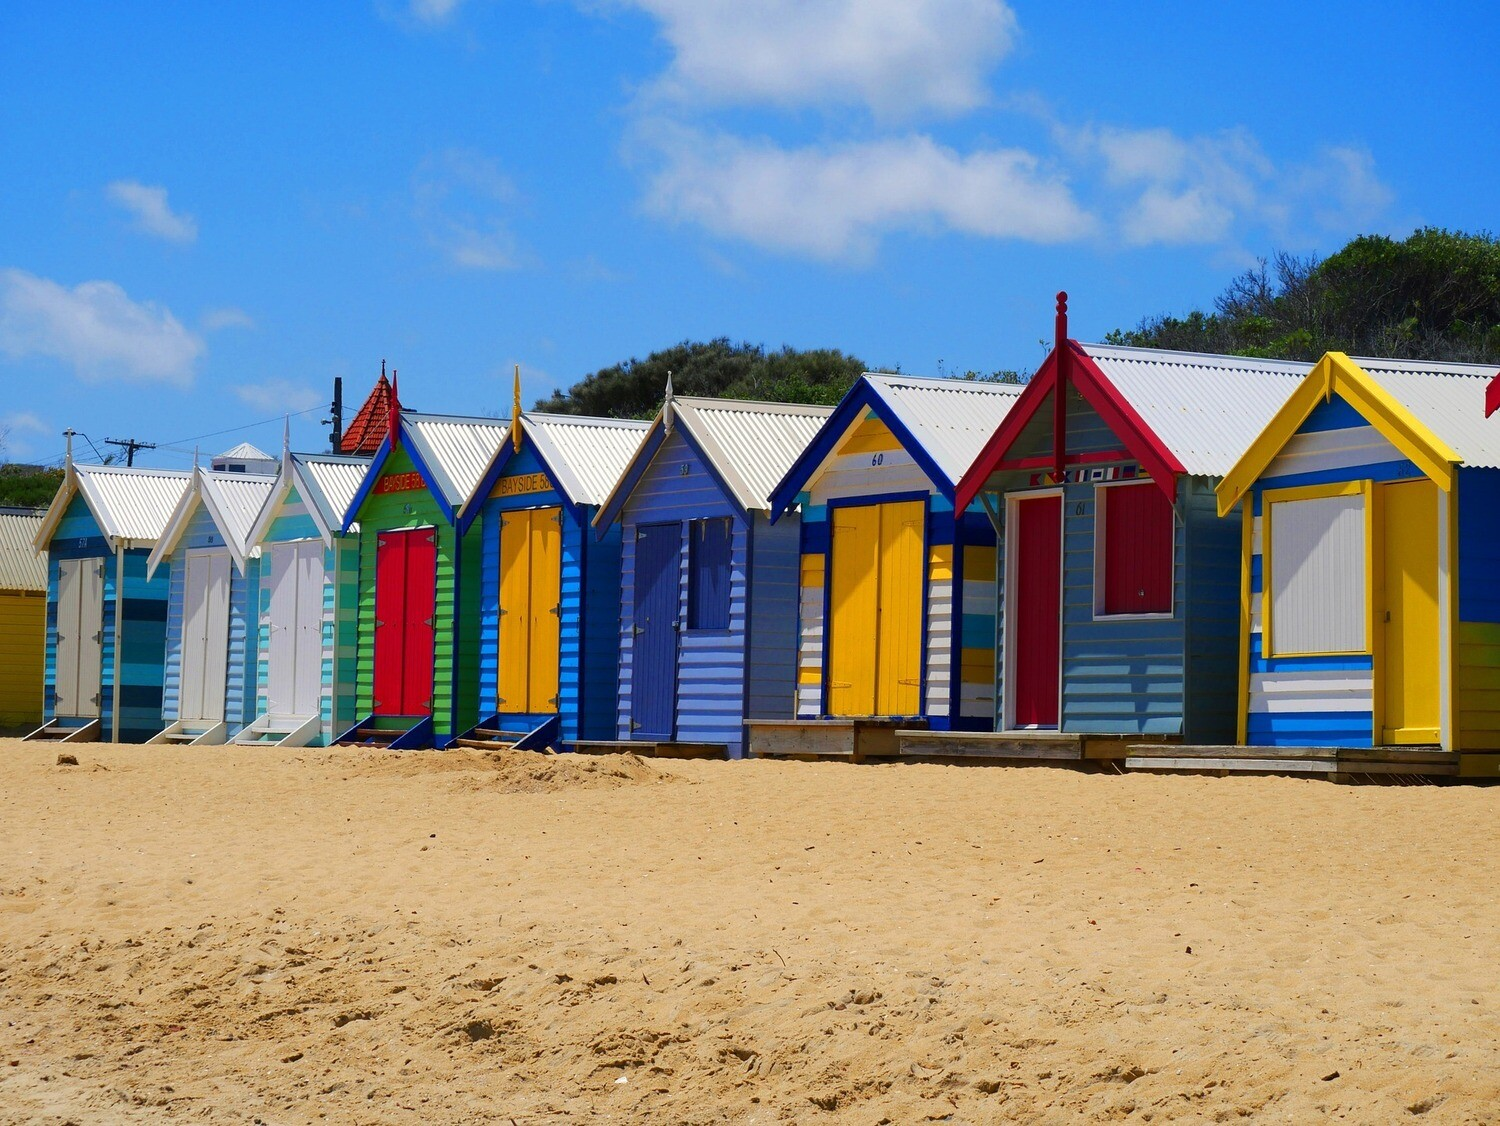 Beach Huts - 40 x 50cm Full Drill (Square), Diamond Painting Kit - Currently in stock